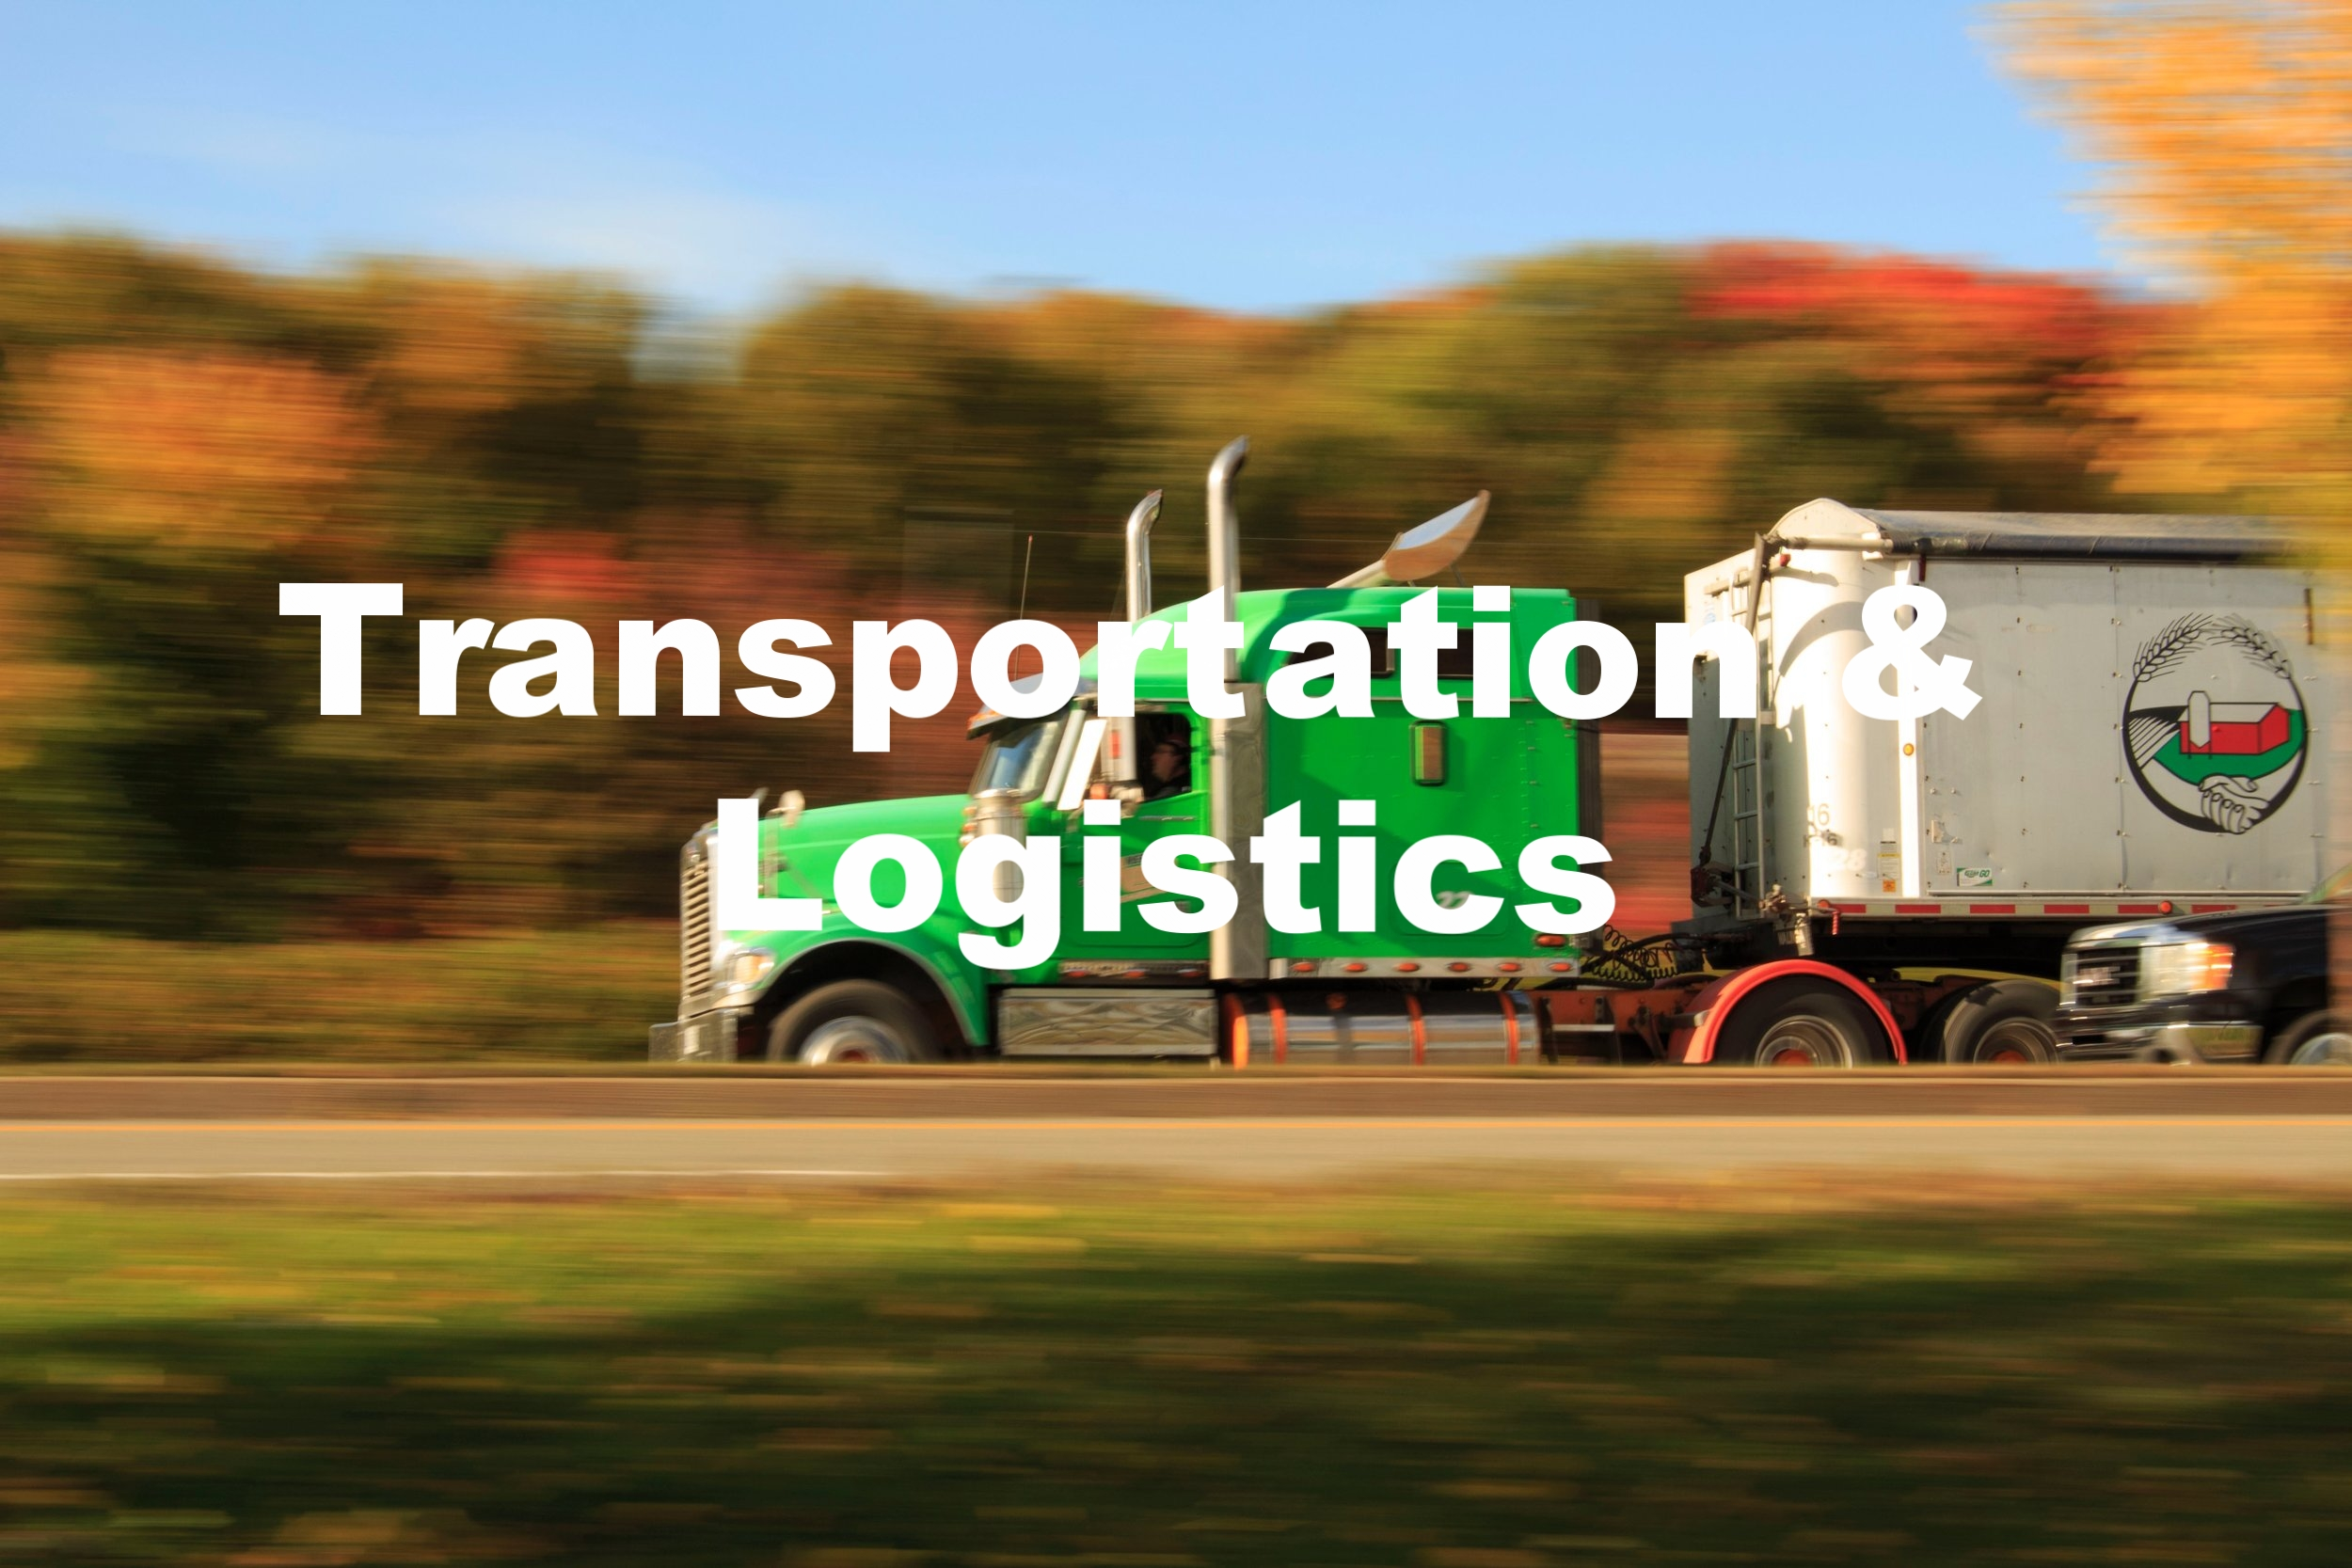 Transportation and logistics are key to virtually every industry around the globe. From network management to pricing and revenue models, we help our transportation and logistics clients balance efficiency with profitability to deliver the goods and services the world is expecting. Our strong foundation in strategy, operational and organizational development helps clients transform challenges into competitive advantages.